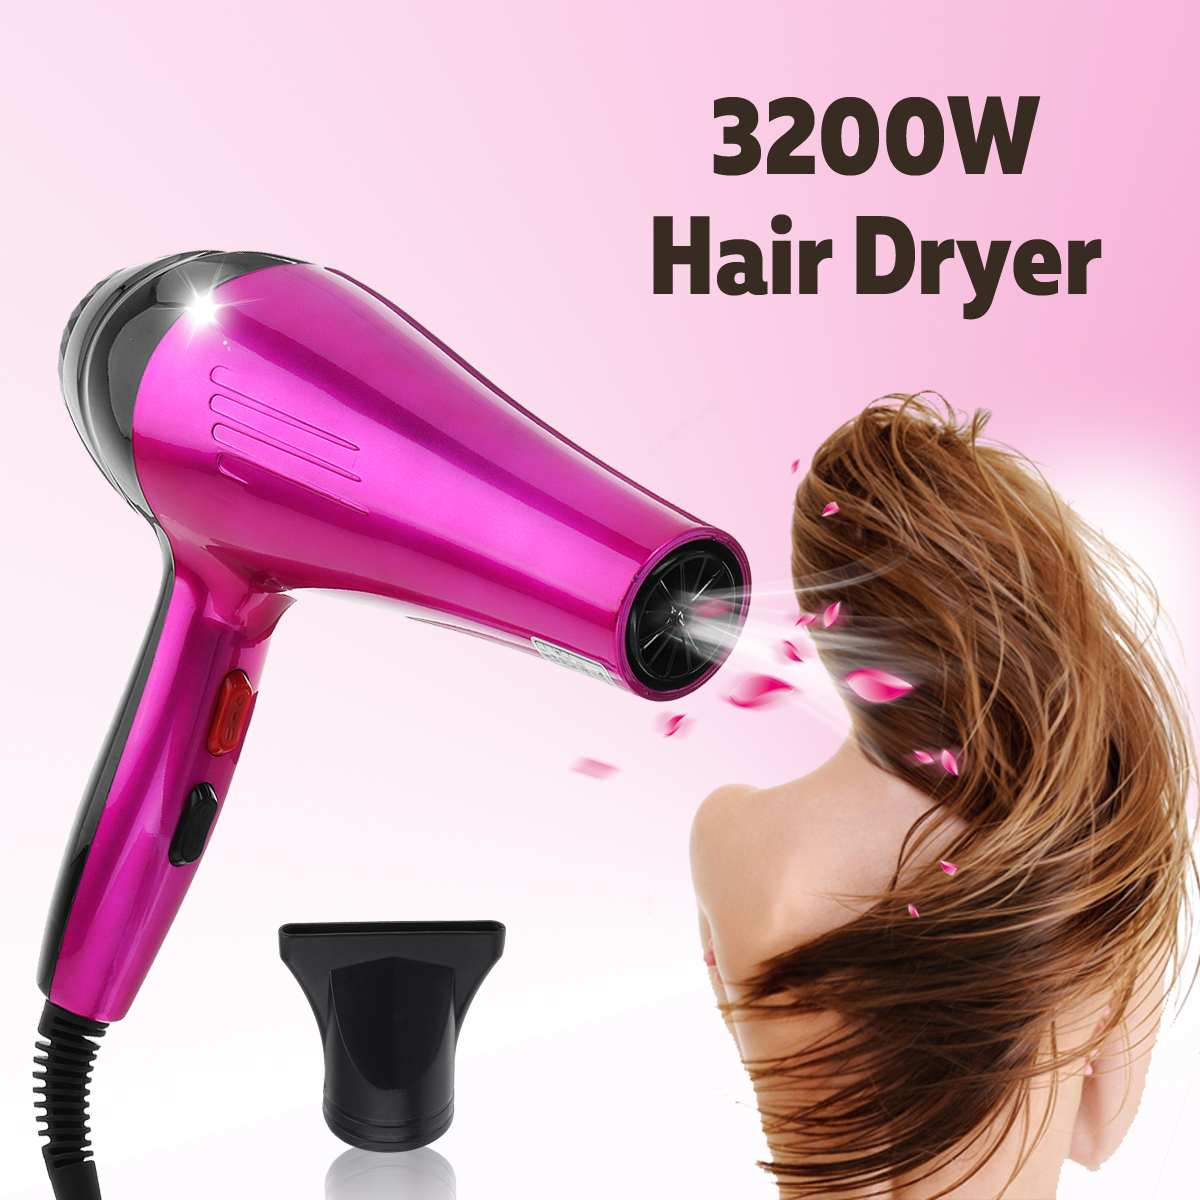 3200W 4 Modes Cold/Hot Air Hair Dryers Professional Powerful Hair Dryer Anion Hair Dryer Power Hair Accessories 220V